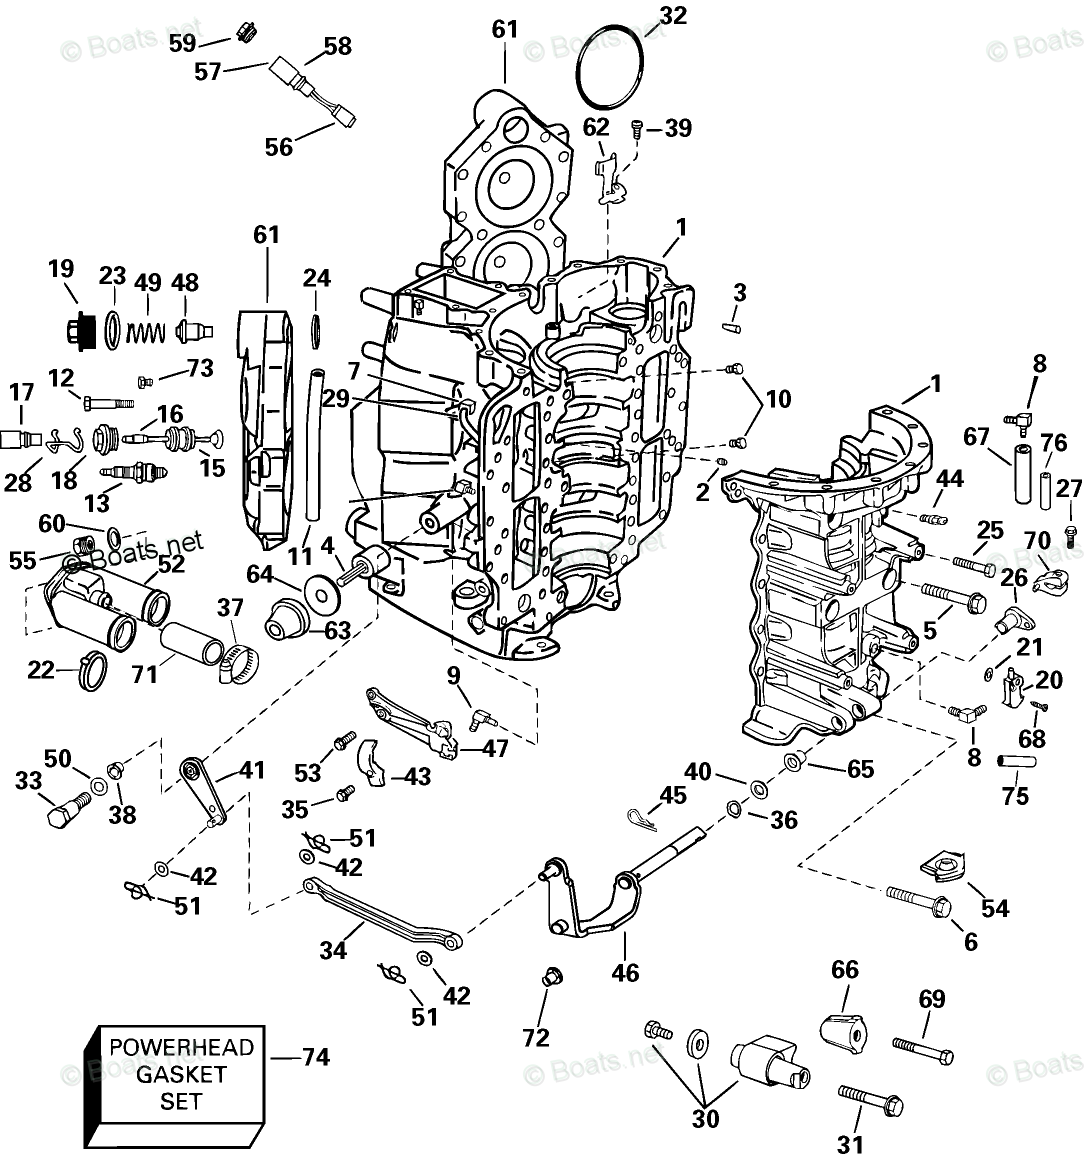 Johnson Outboard Parts by Year 2003 OEM Parts Diagram for